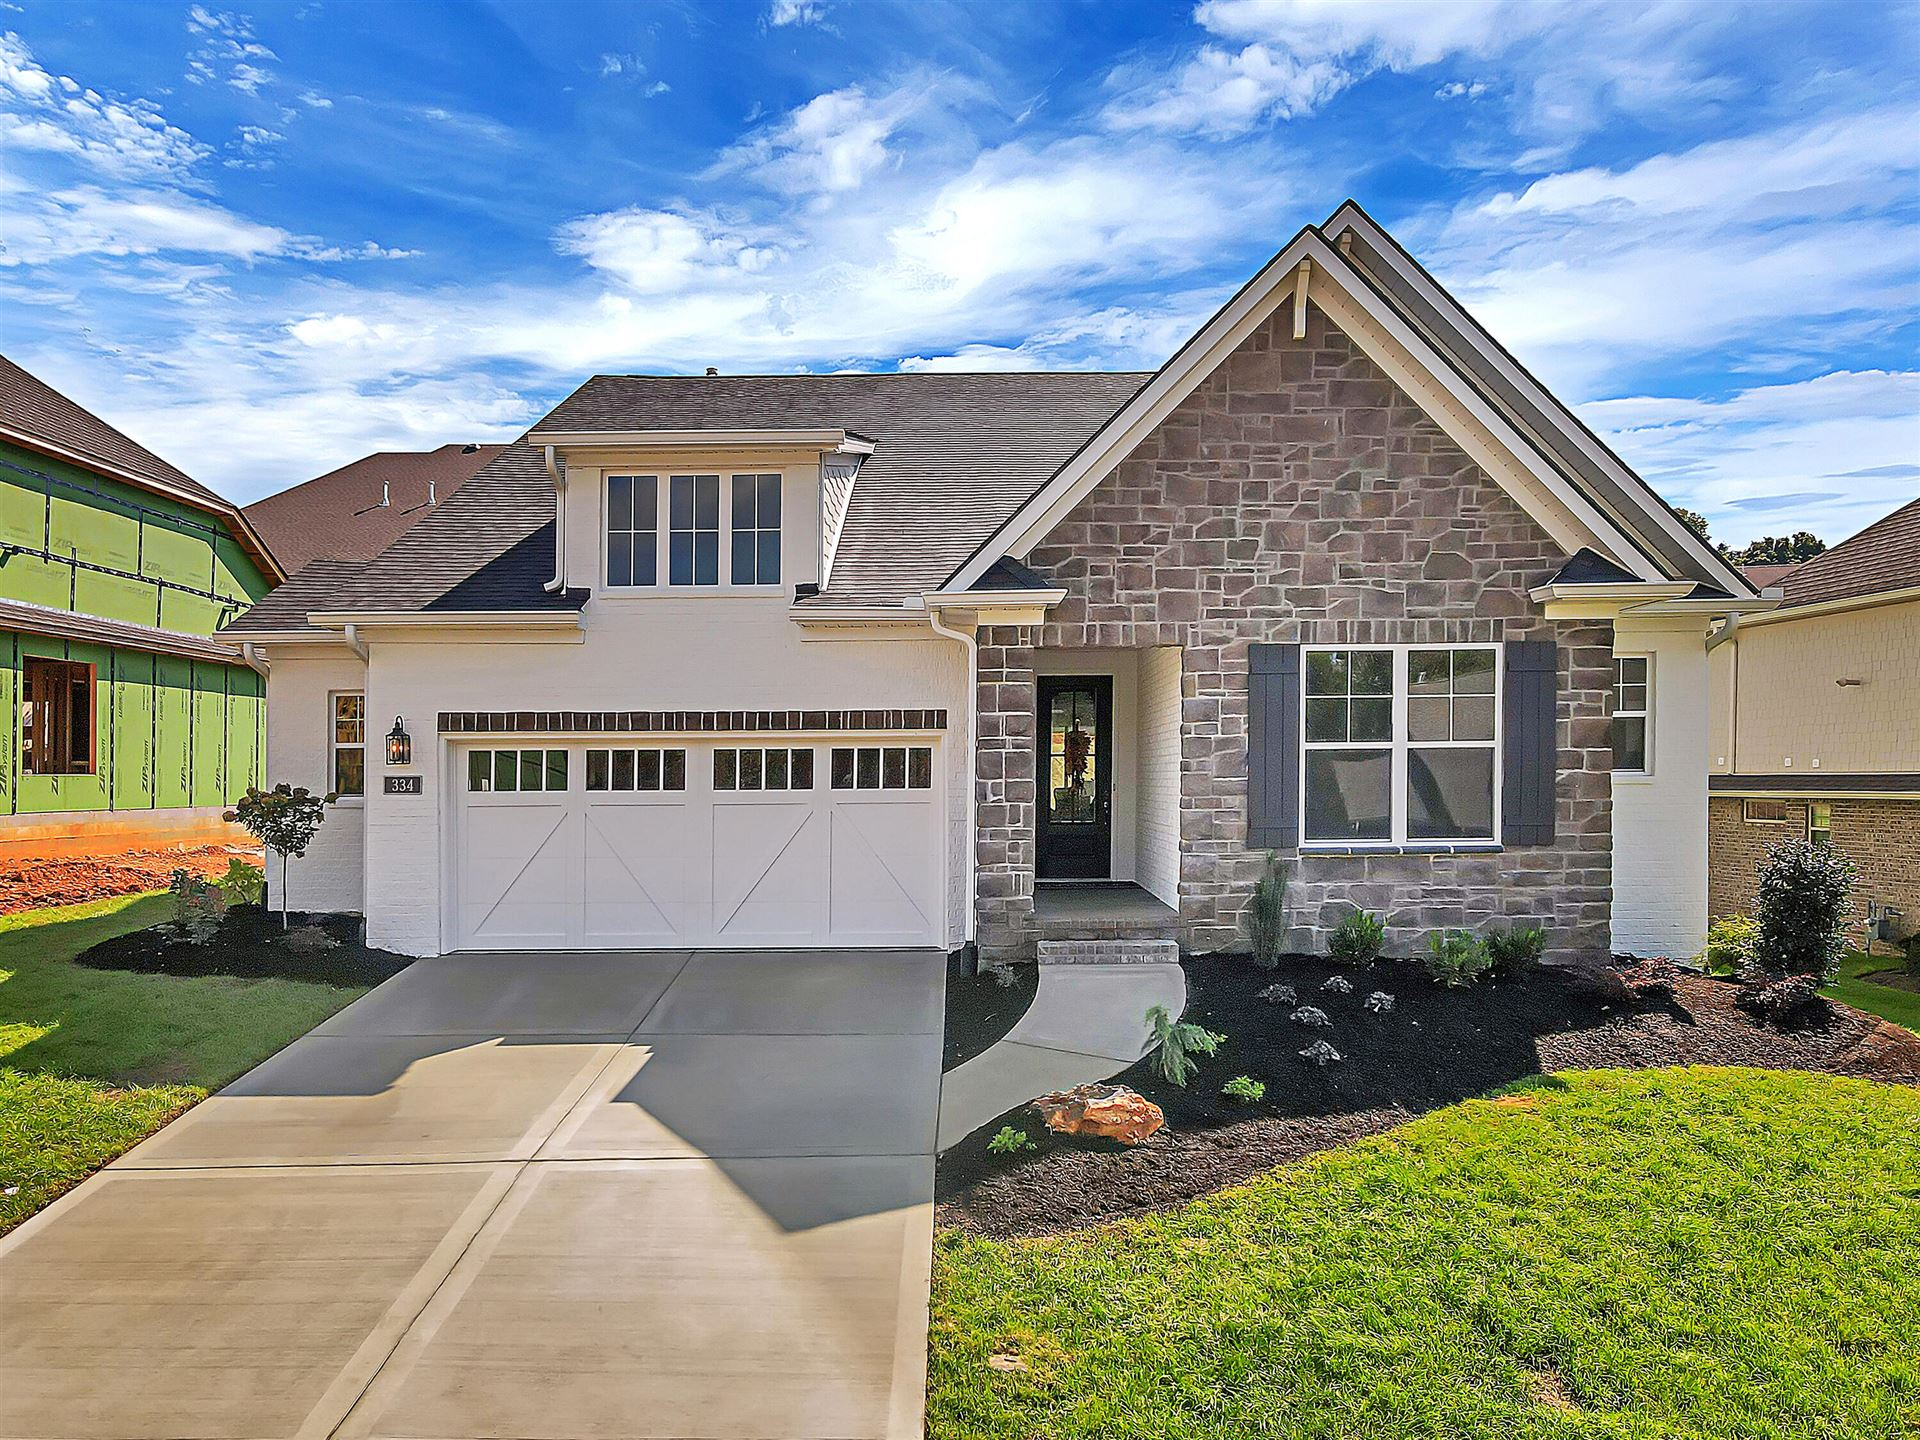 334 Kendall Hunt St, Knoxville, TN 37934 - MLS#: 1149313